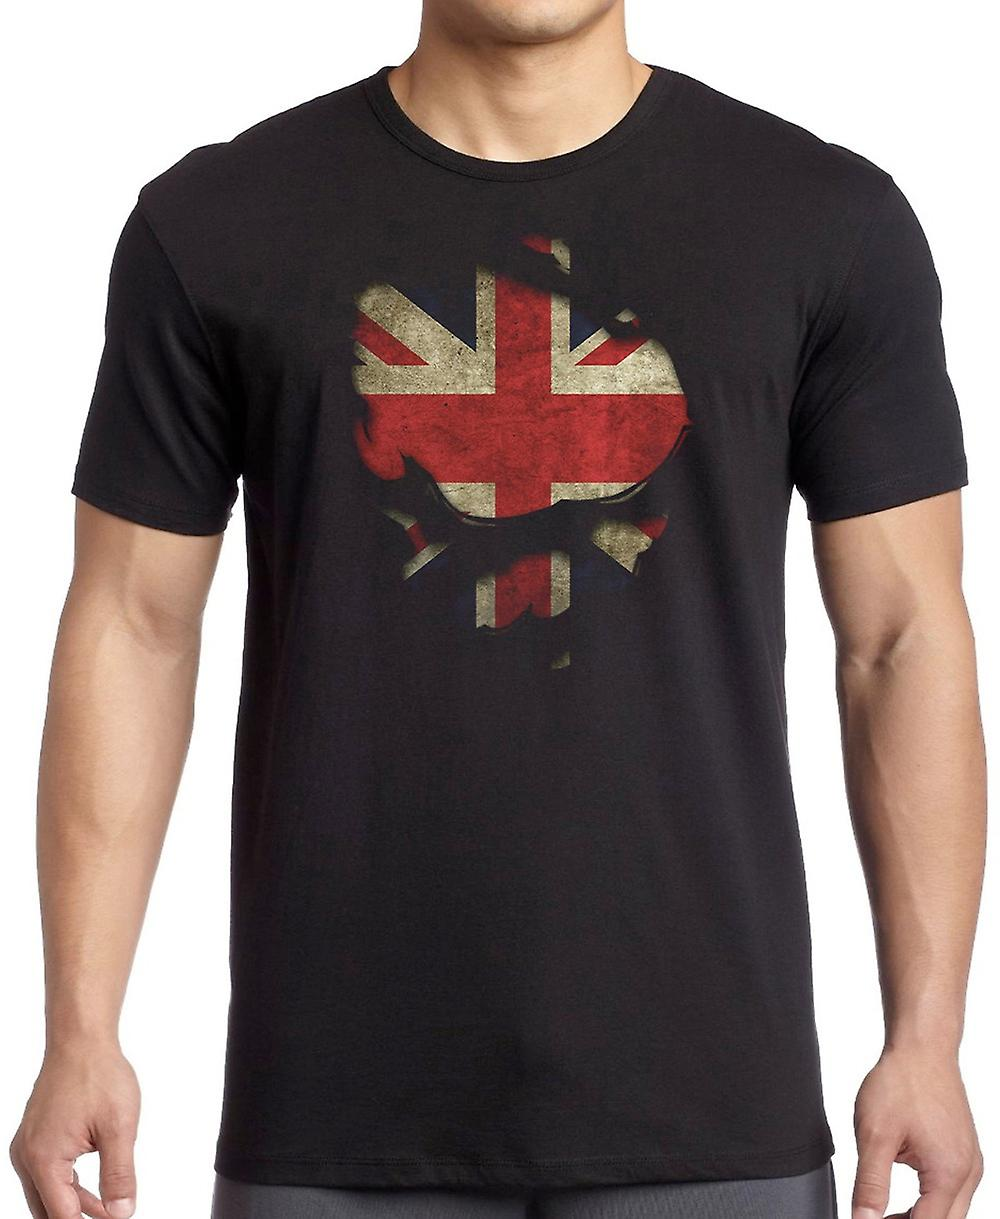 Union Jack United Kingdon Riss Effekt unter Shirt Kinder T Shirt